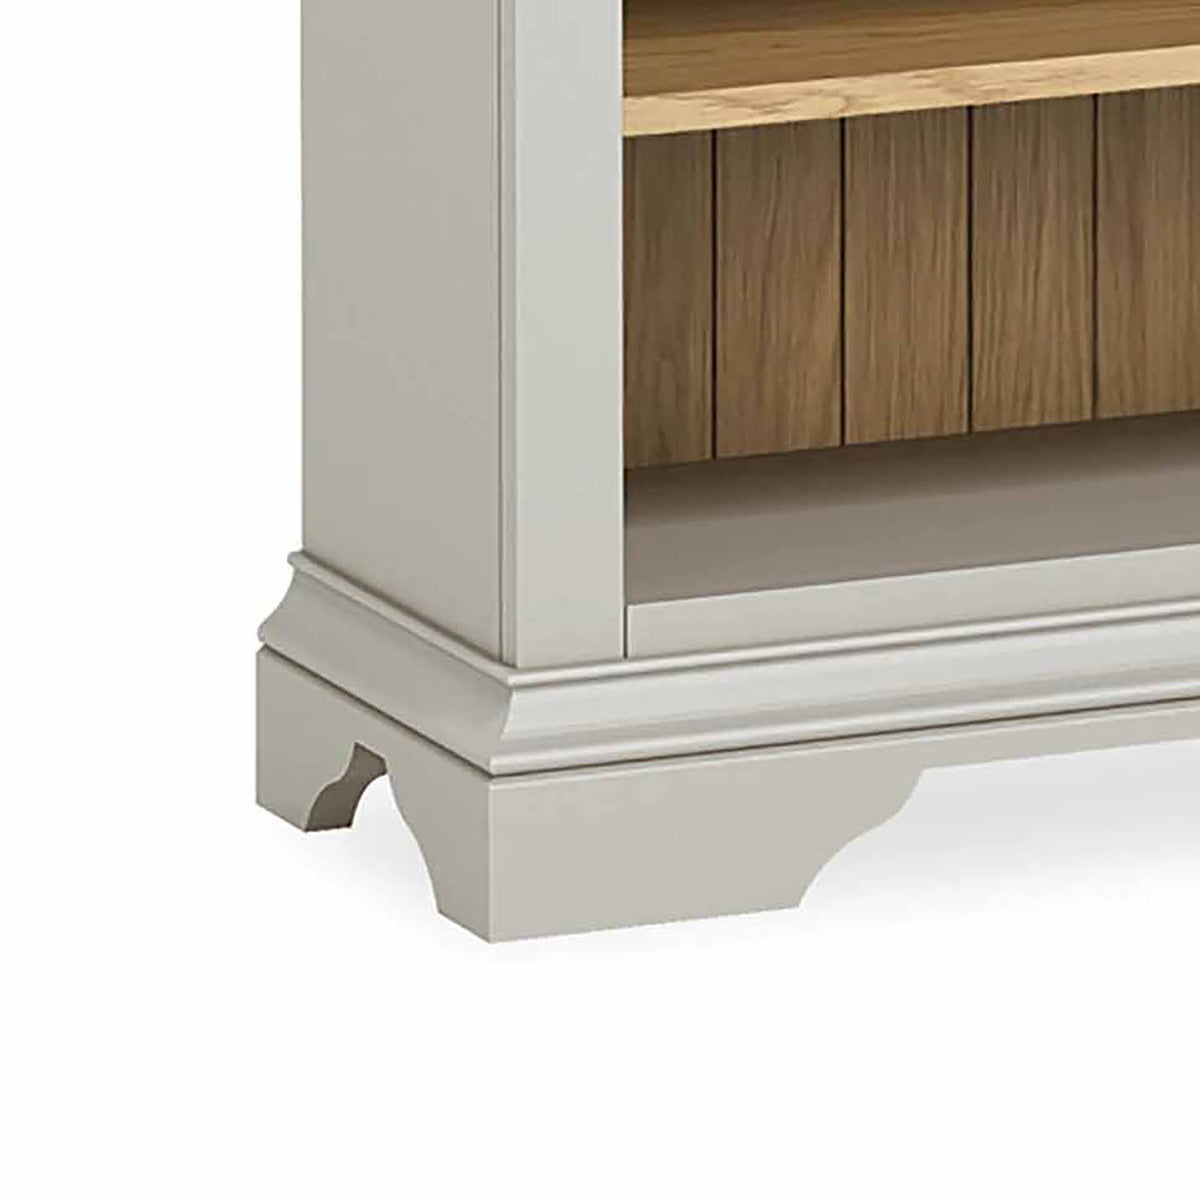 Normandy Grey Low Bookcase - Close Up of  Plinth Detail on Base